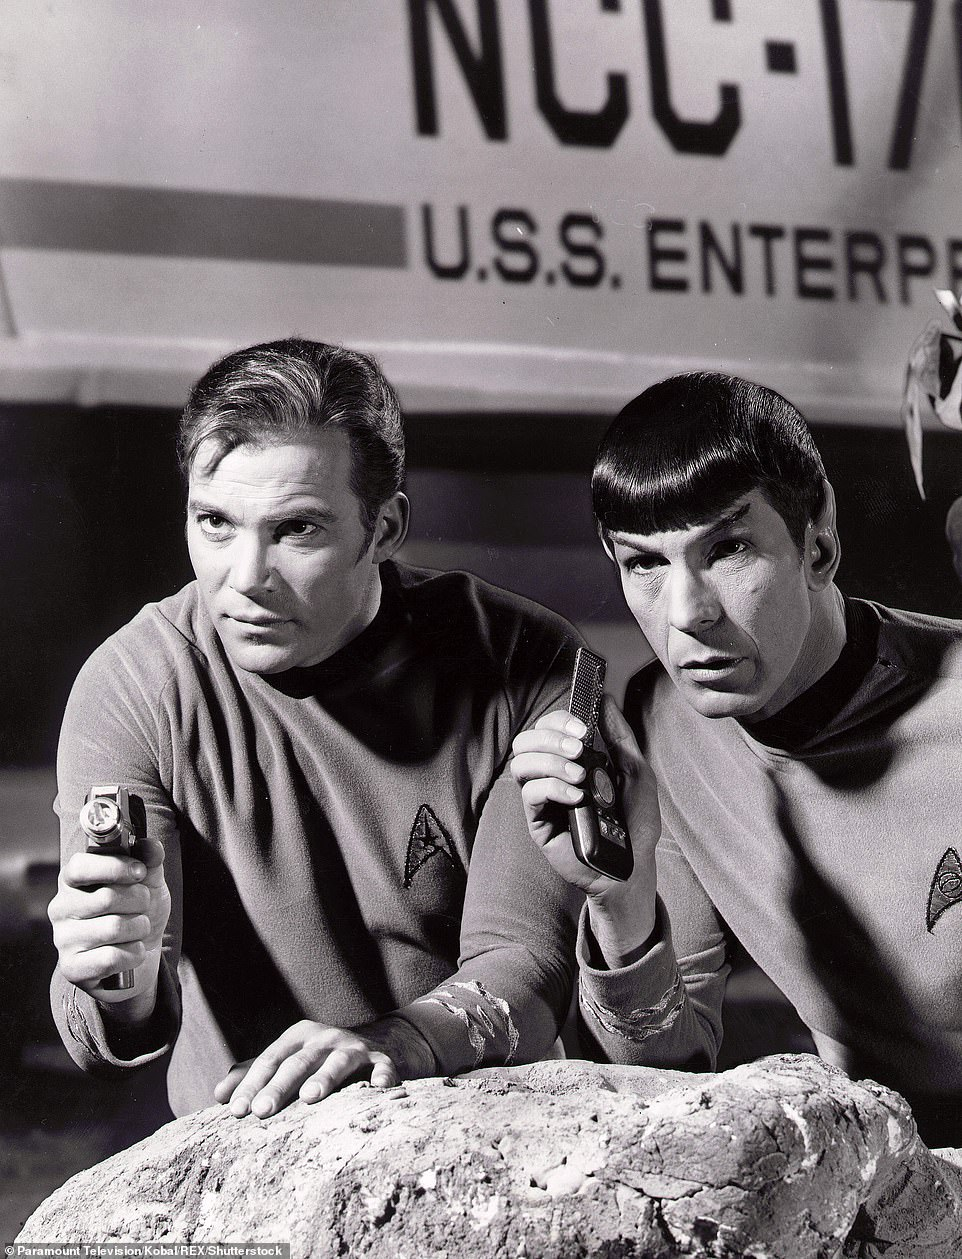 Shatner shot to fame when he took on the role of James T Kirk in the original Star Trek series in 1966